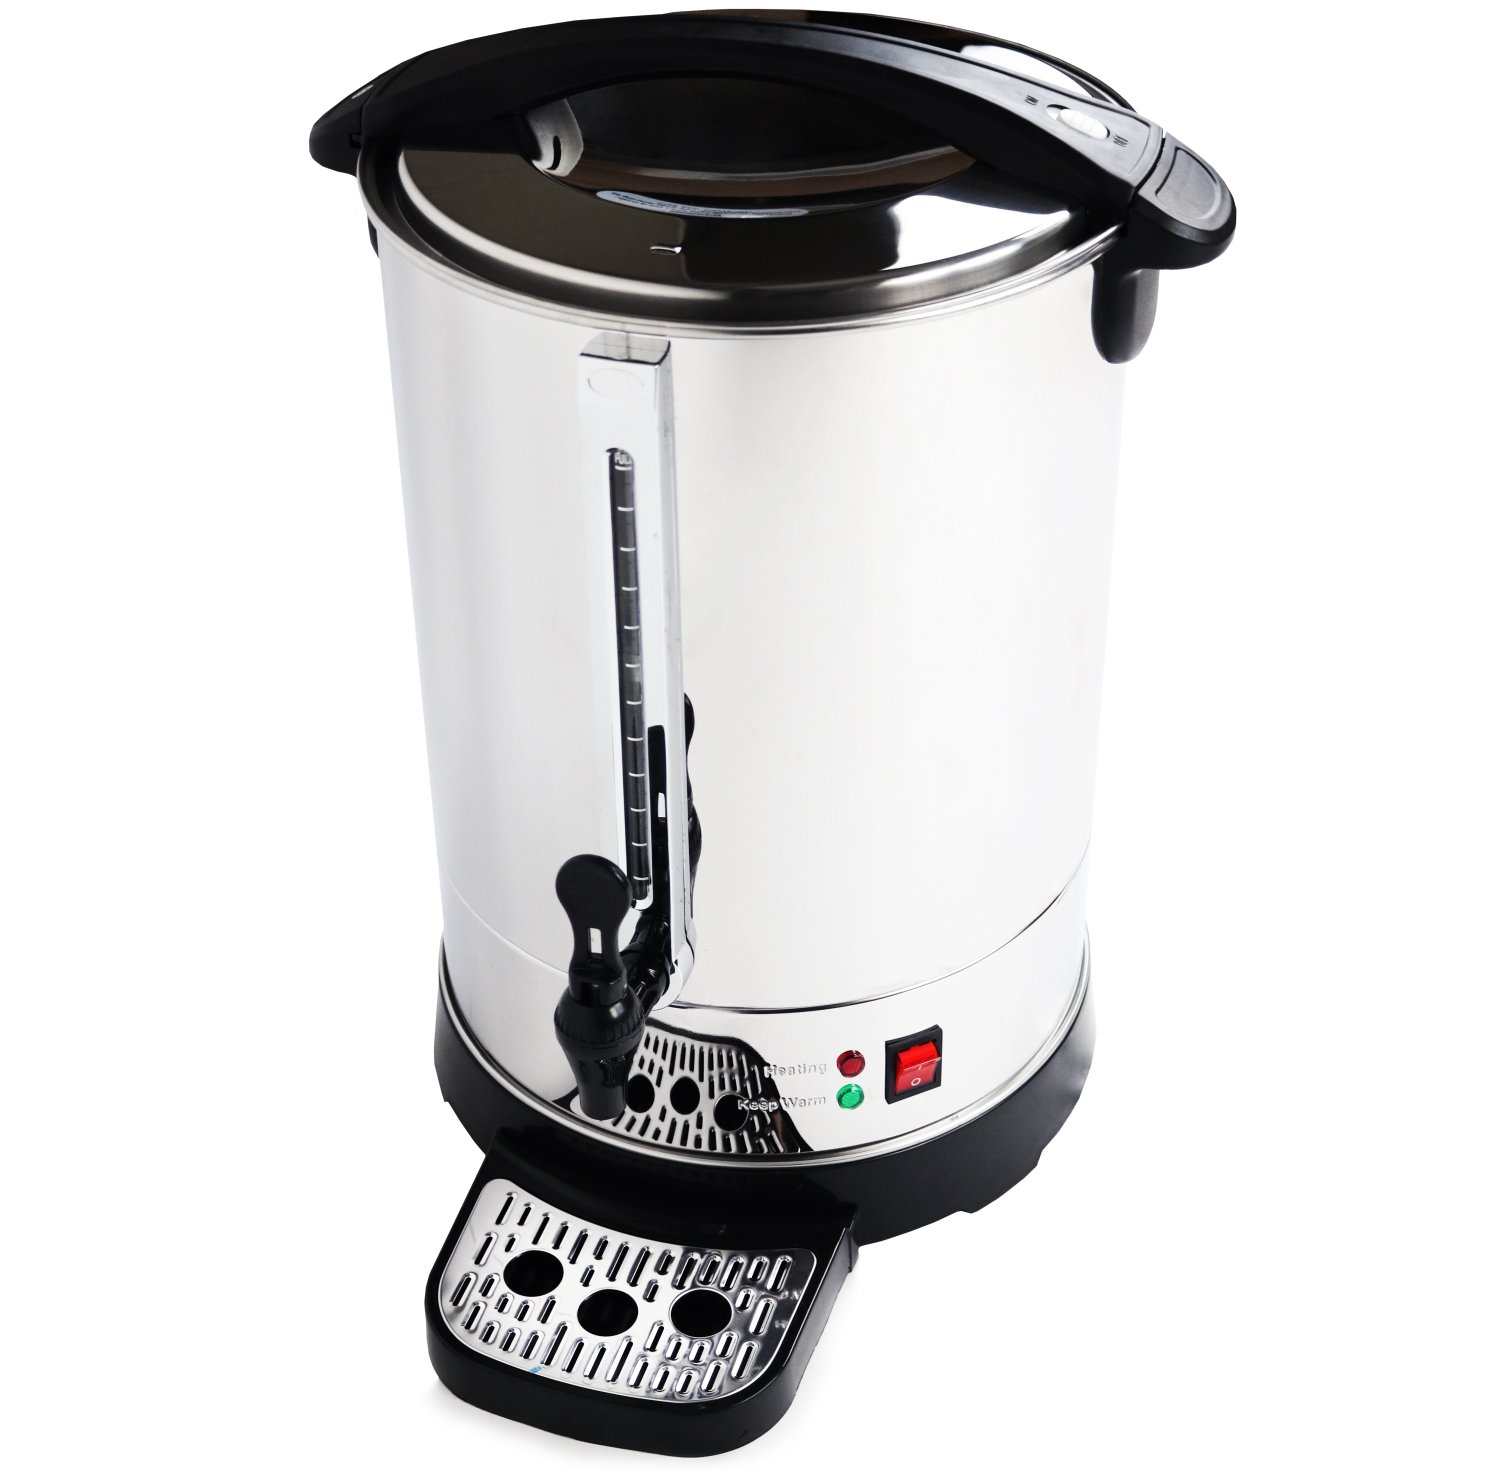 Water Boiler For Tea ~ New electrical l commercial catering kitchen hot water